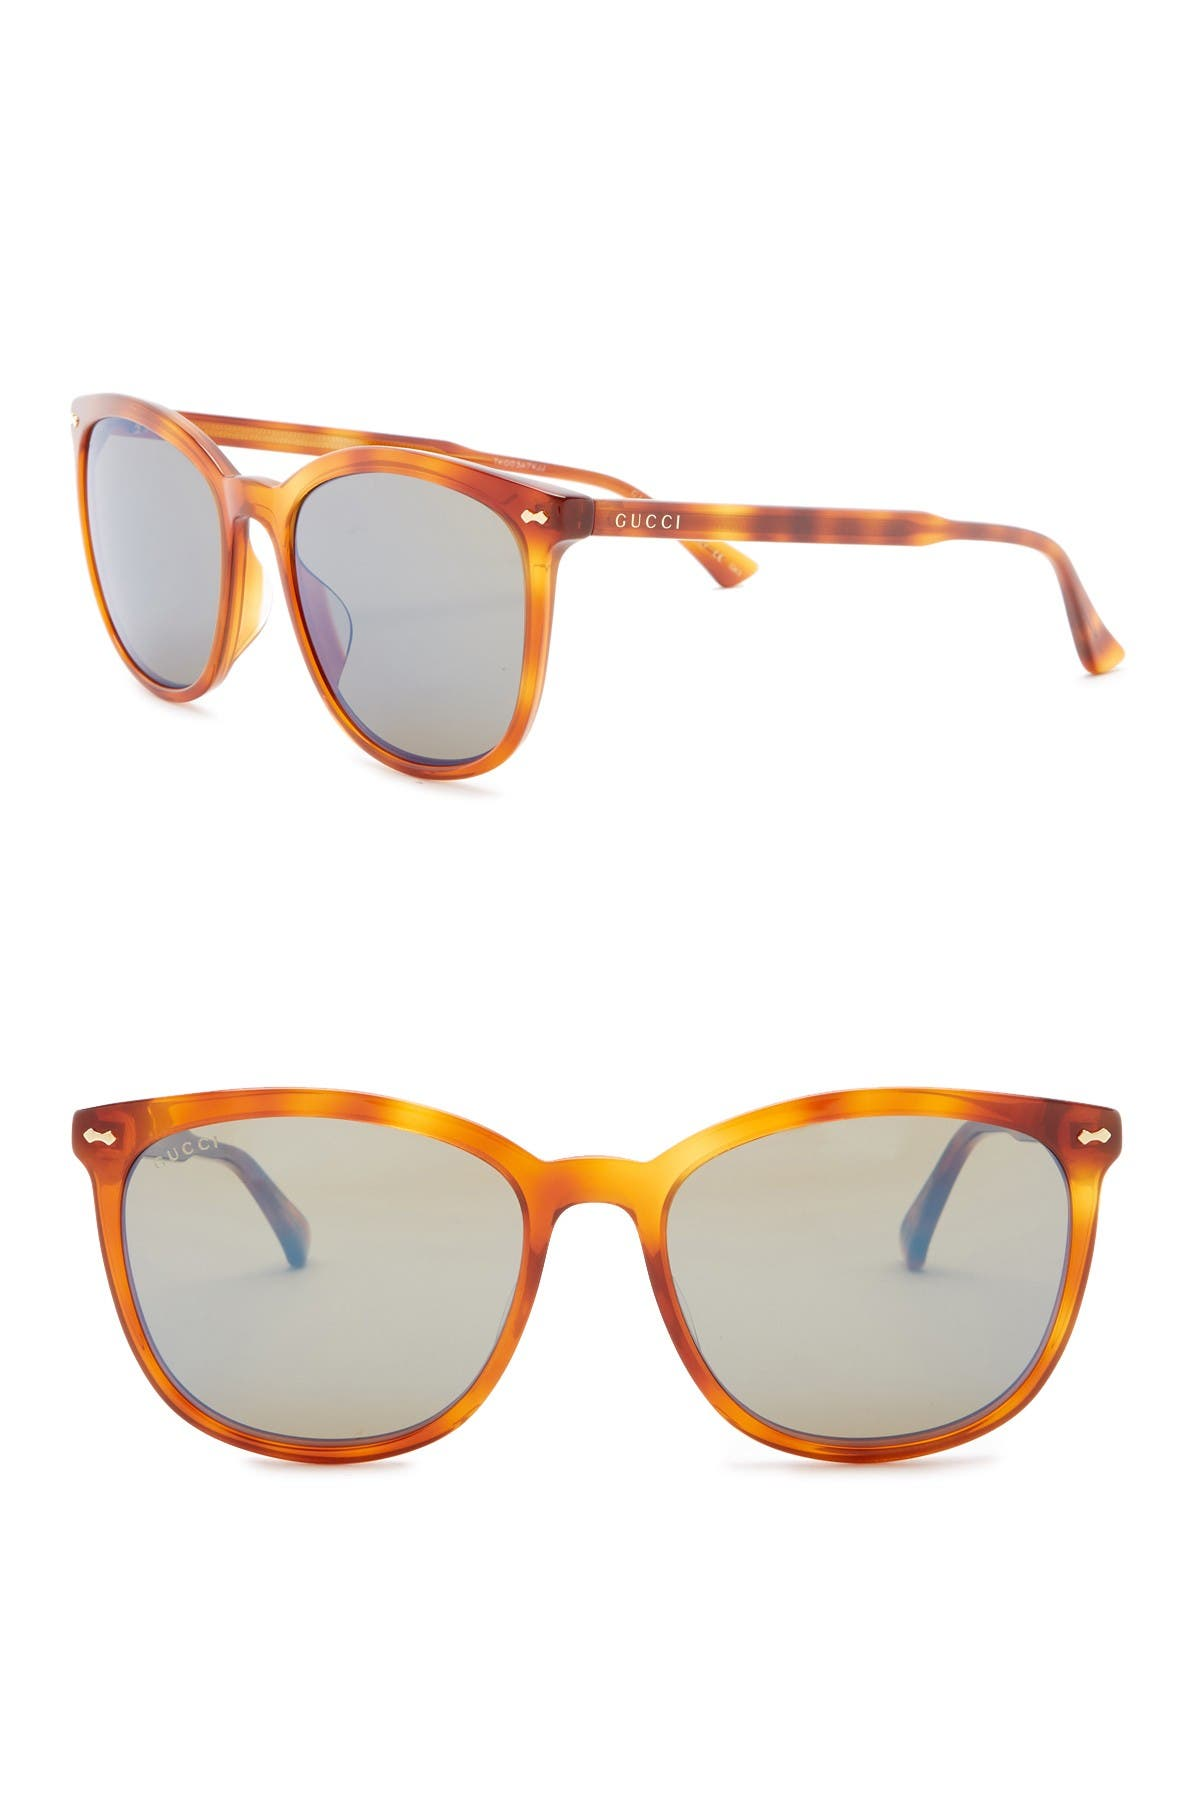 Image of GUCCI 59mm Square Sunglasses